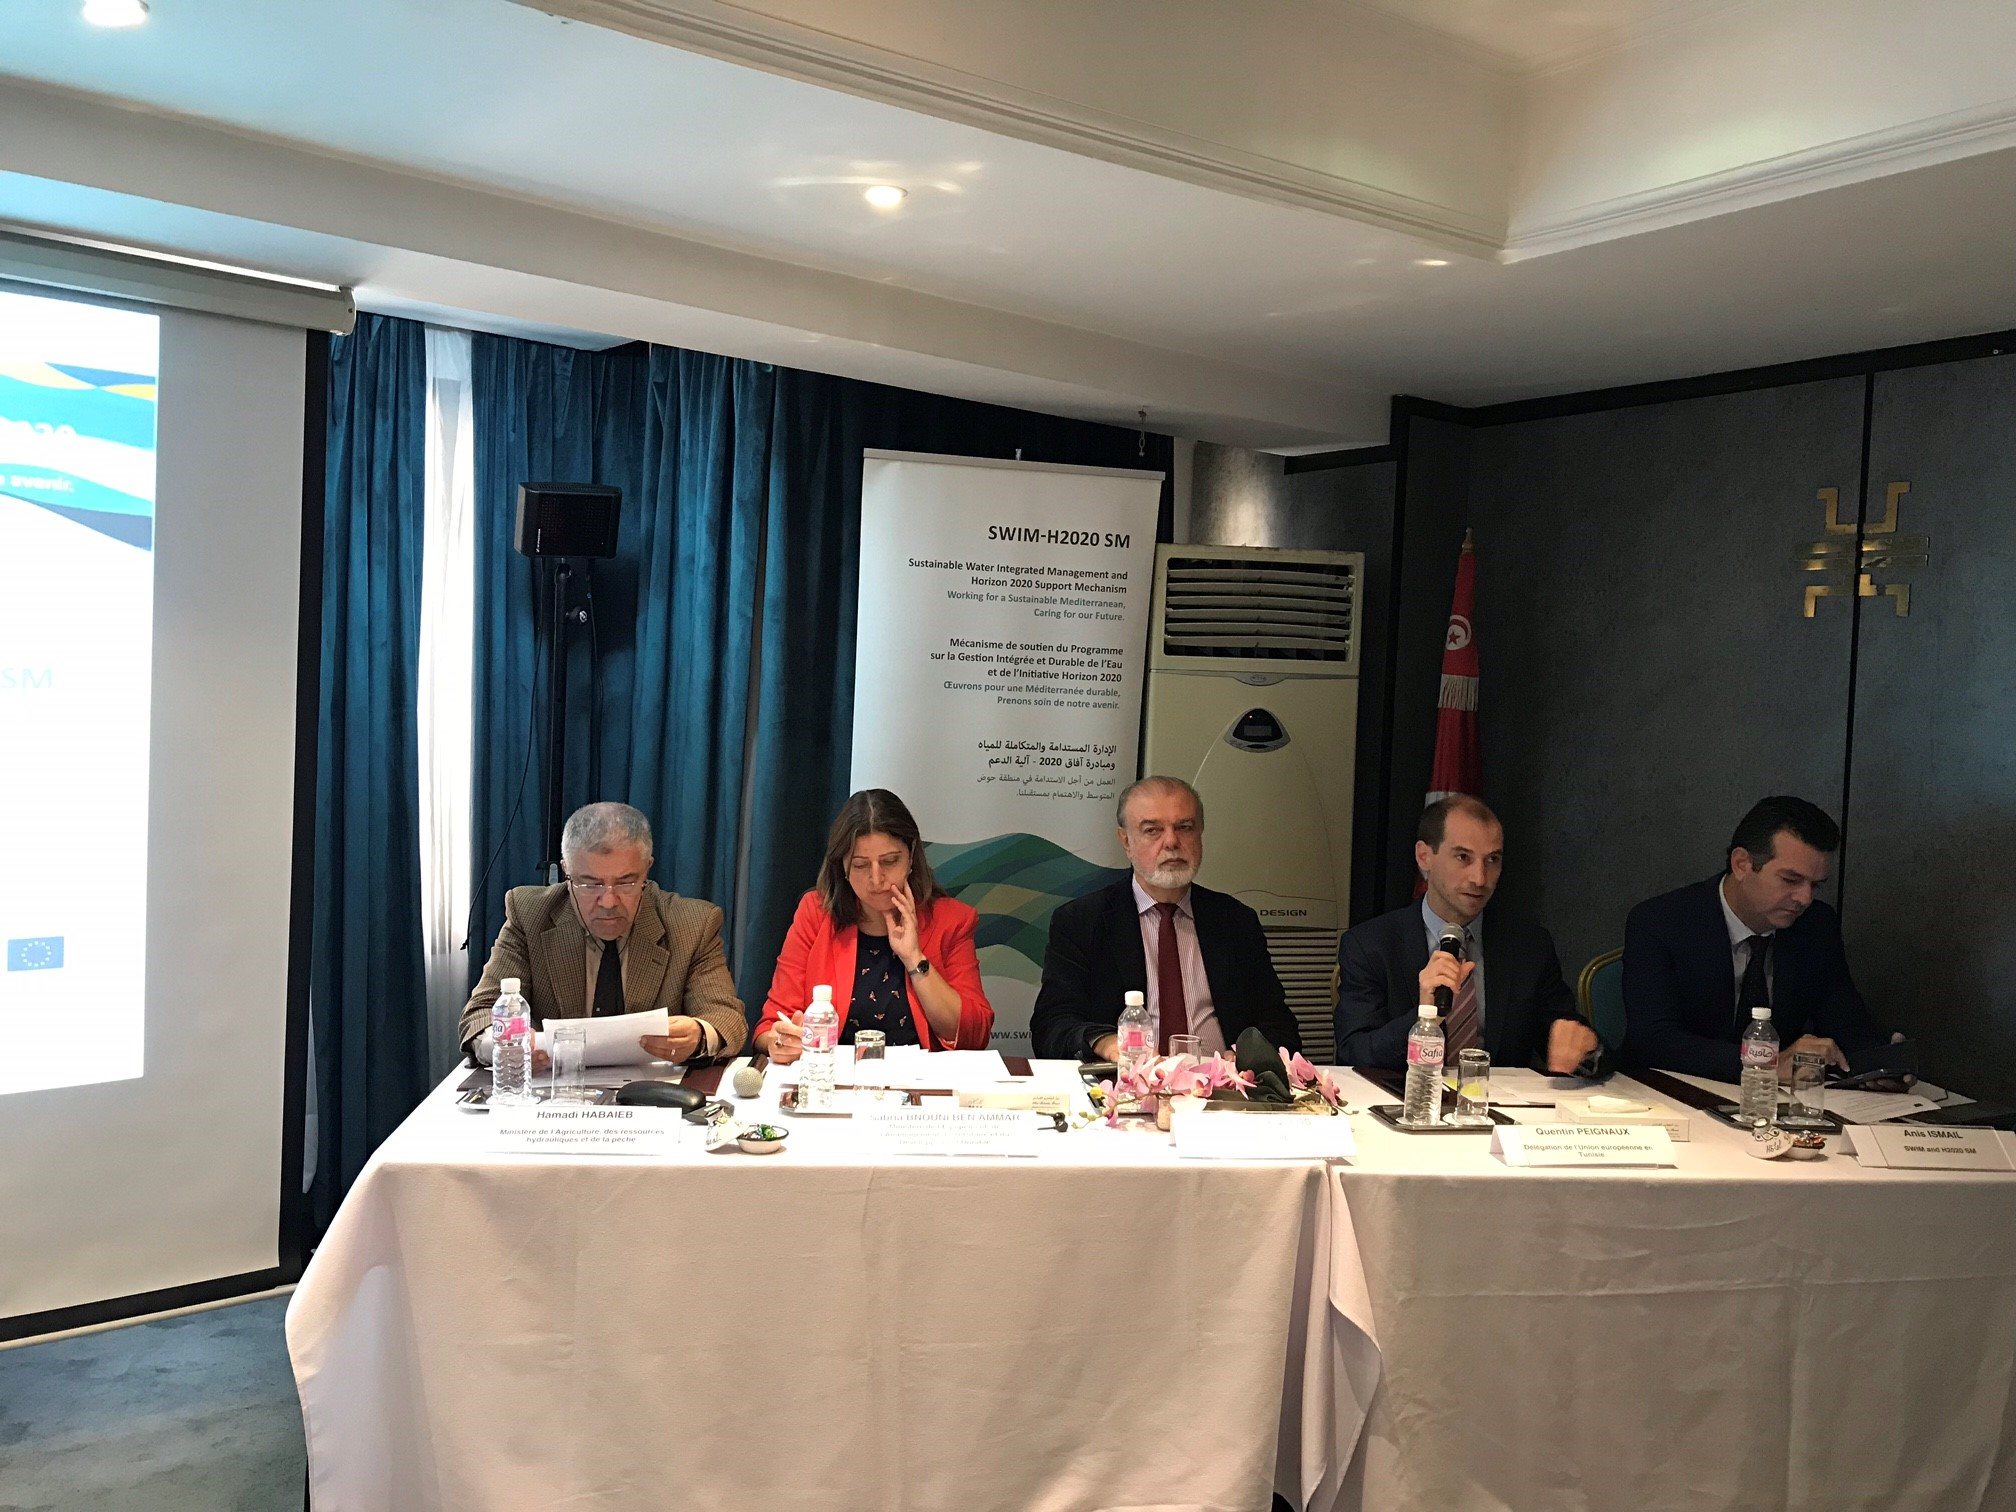 8 octobre 2018, Tunis, Tunisie – SWIM-H2020 SM Réunion nationale Tunisie